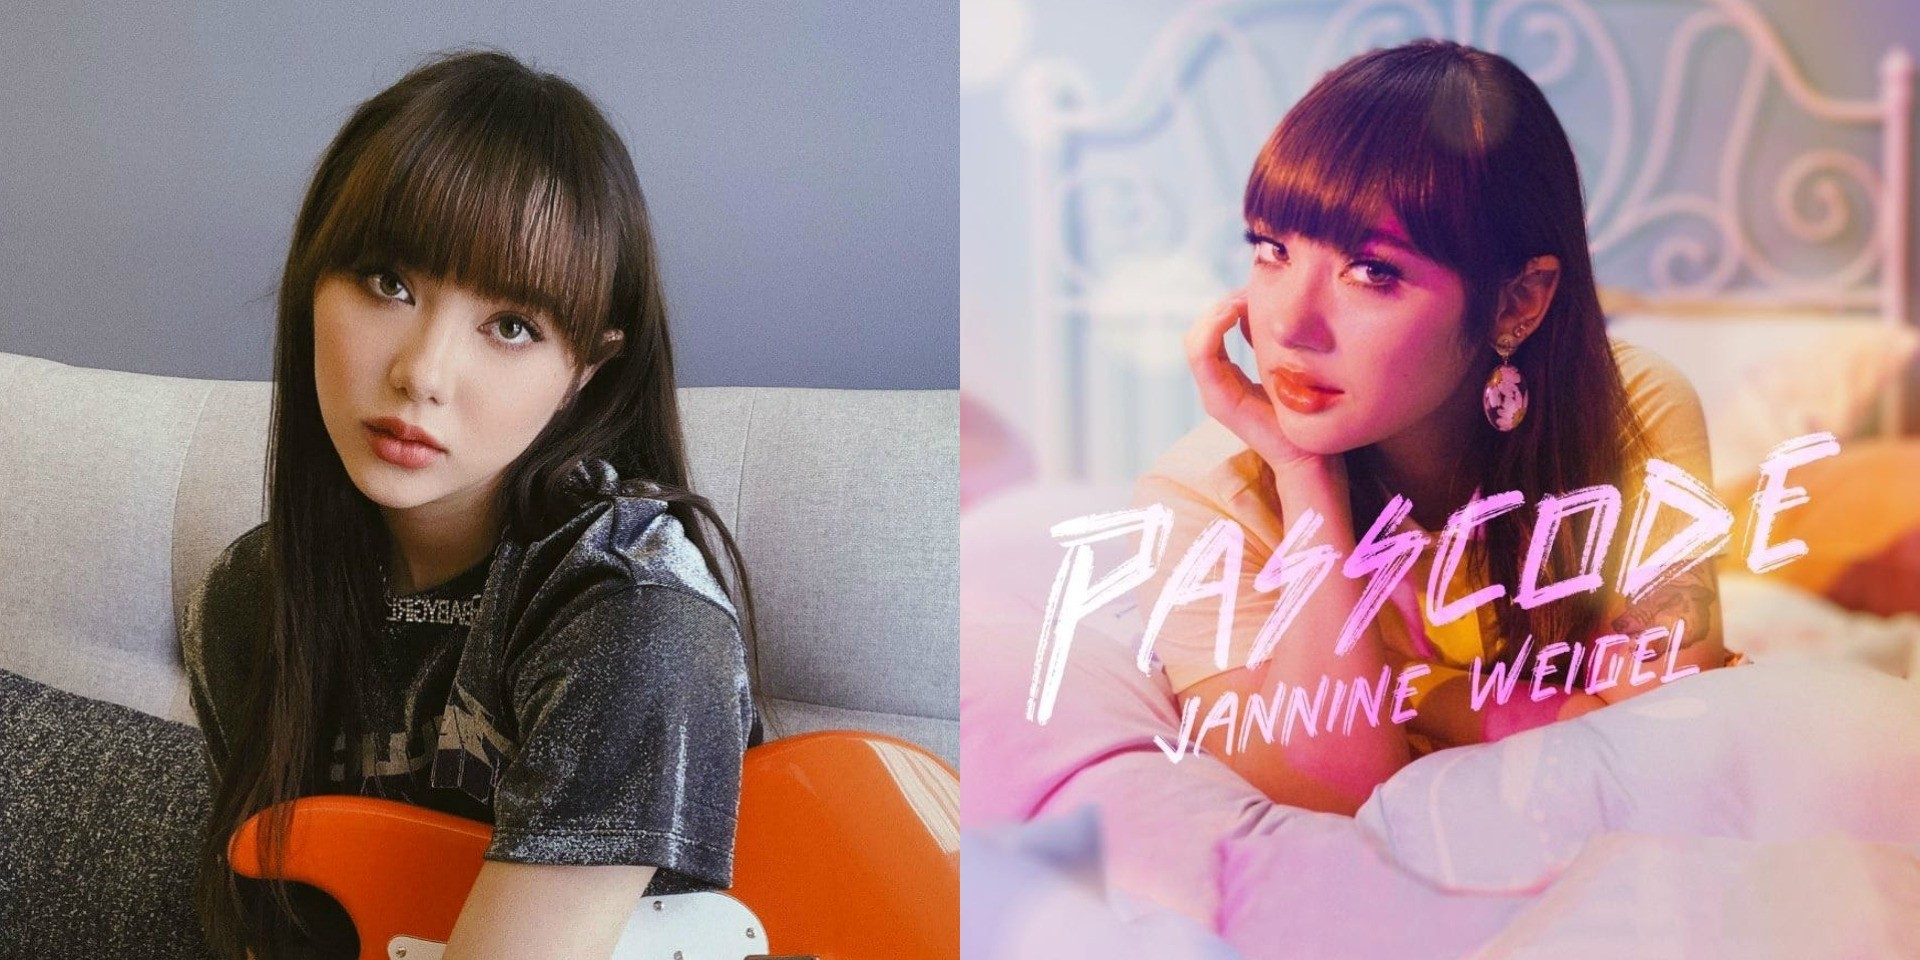 RedRecords' first artist Jannine Weigel to debut with new single 'Passcode'